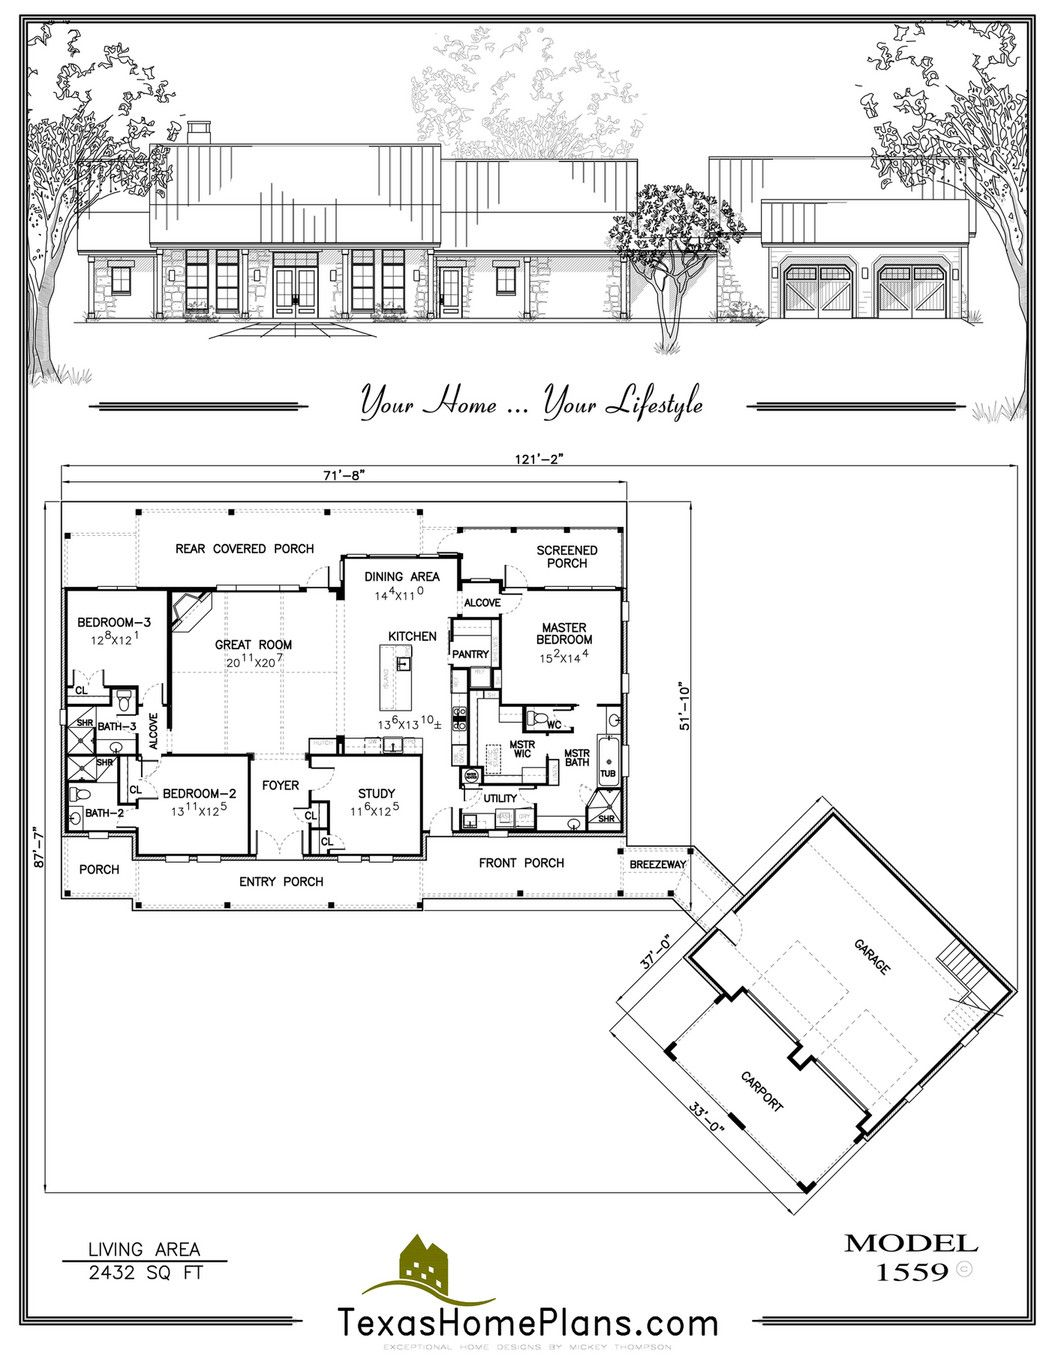 Texas Home Plans Texas Farm Homes Page 150 151 Texas Homes House Plans How To Plan